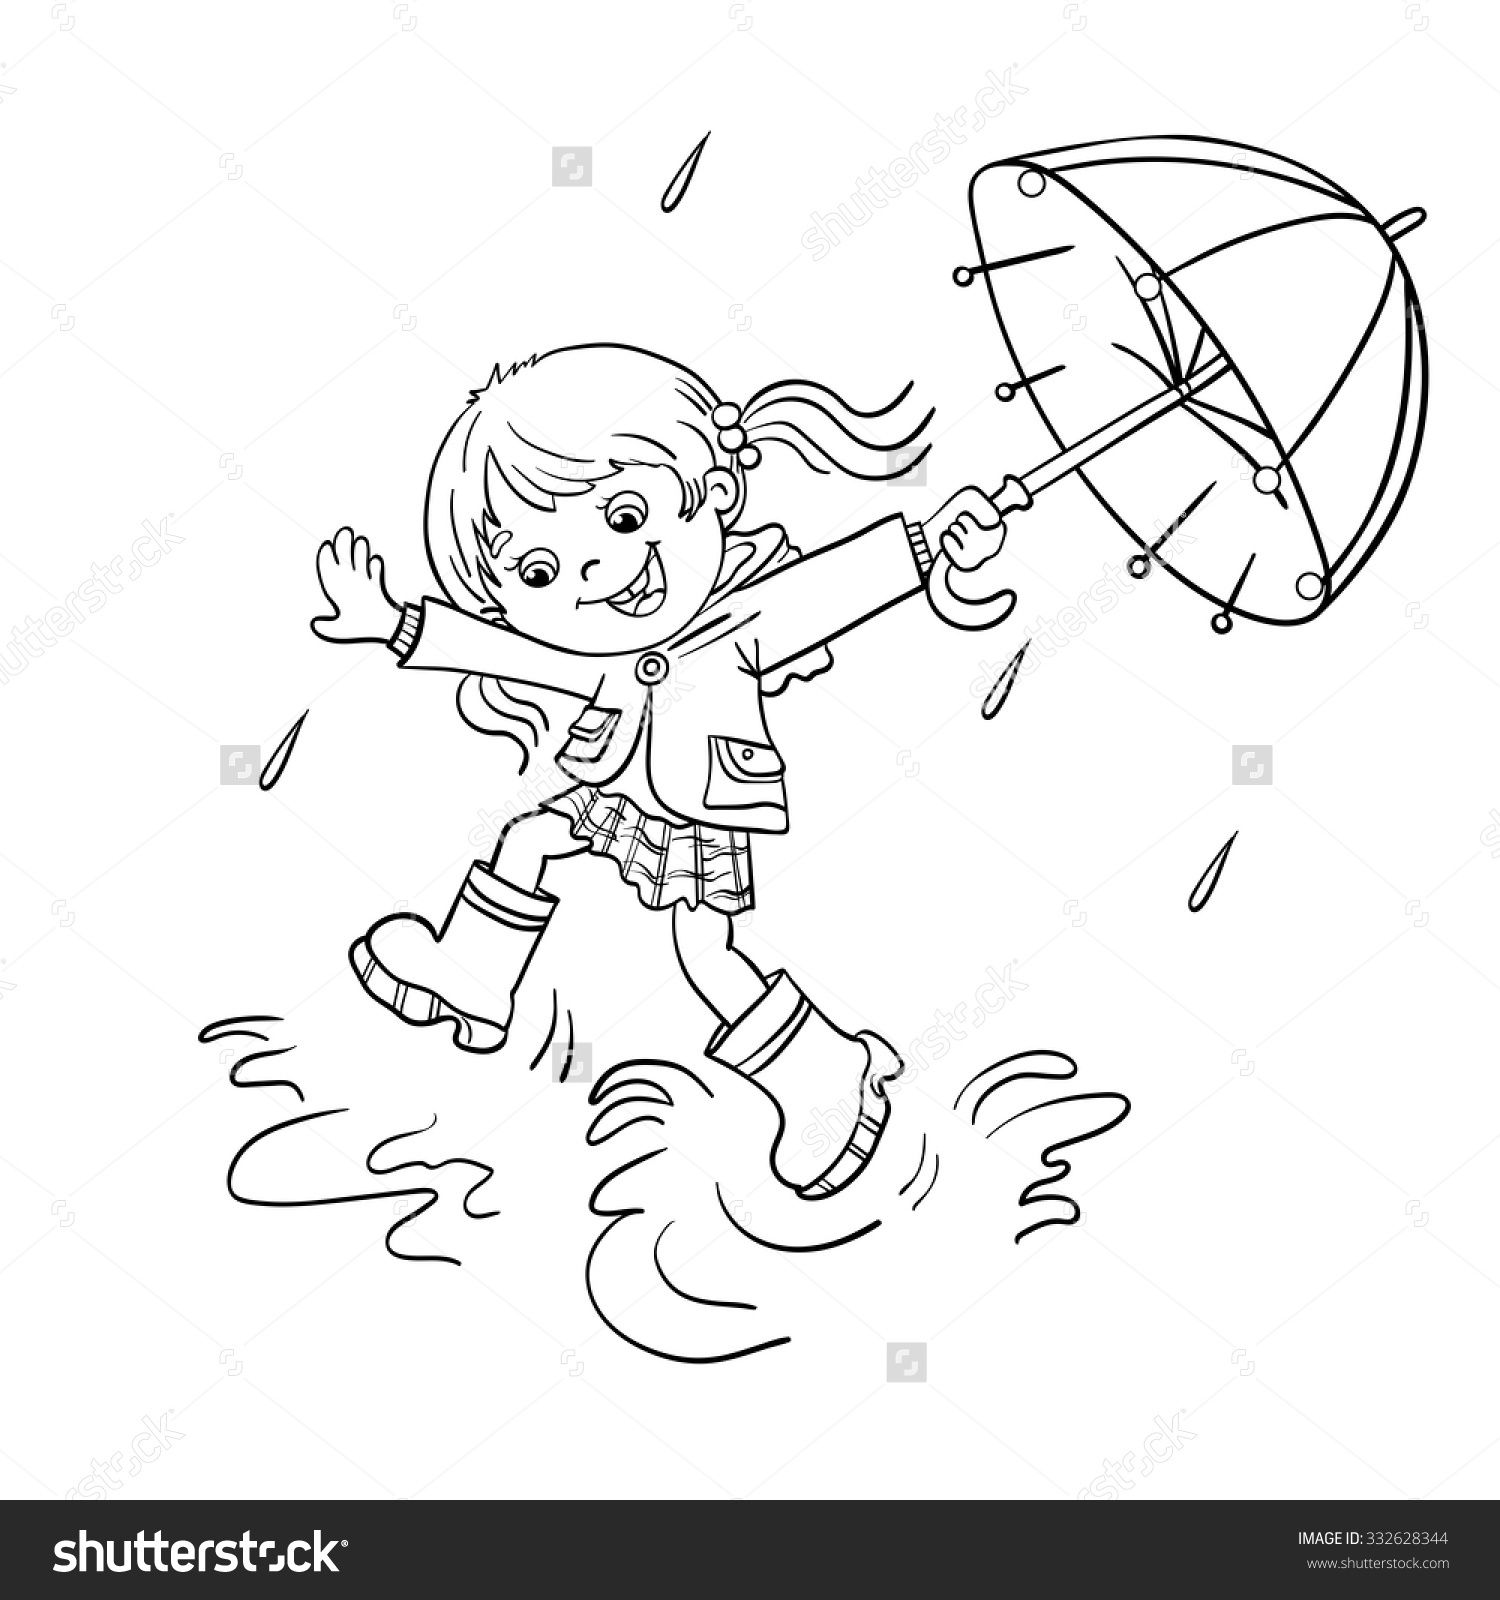 Playing In The Rain Coloring Pages Coloring Page Outline Of A